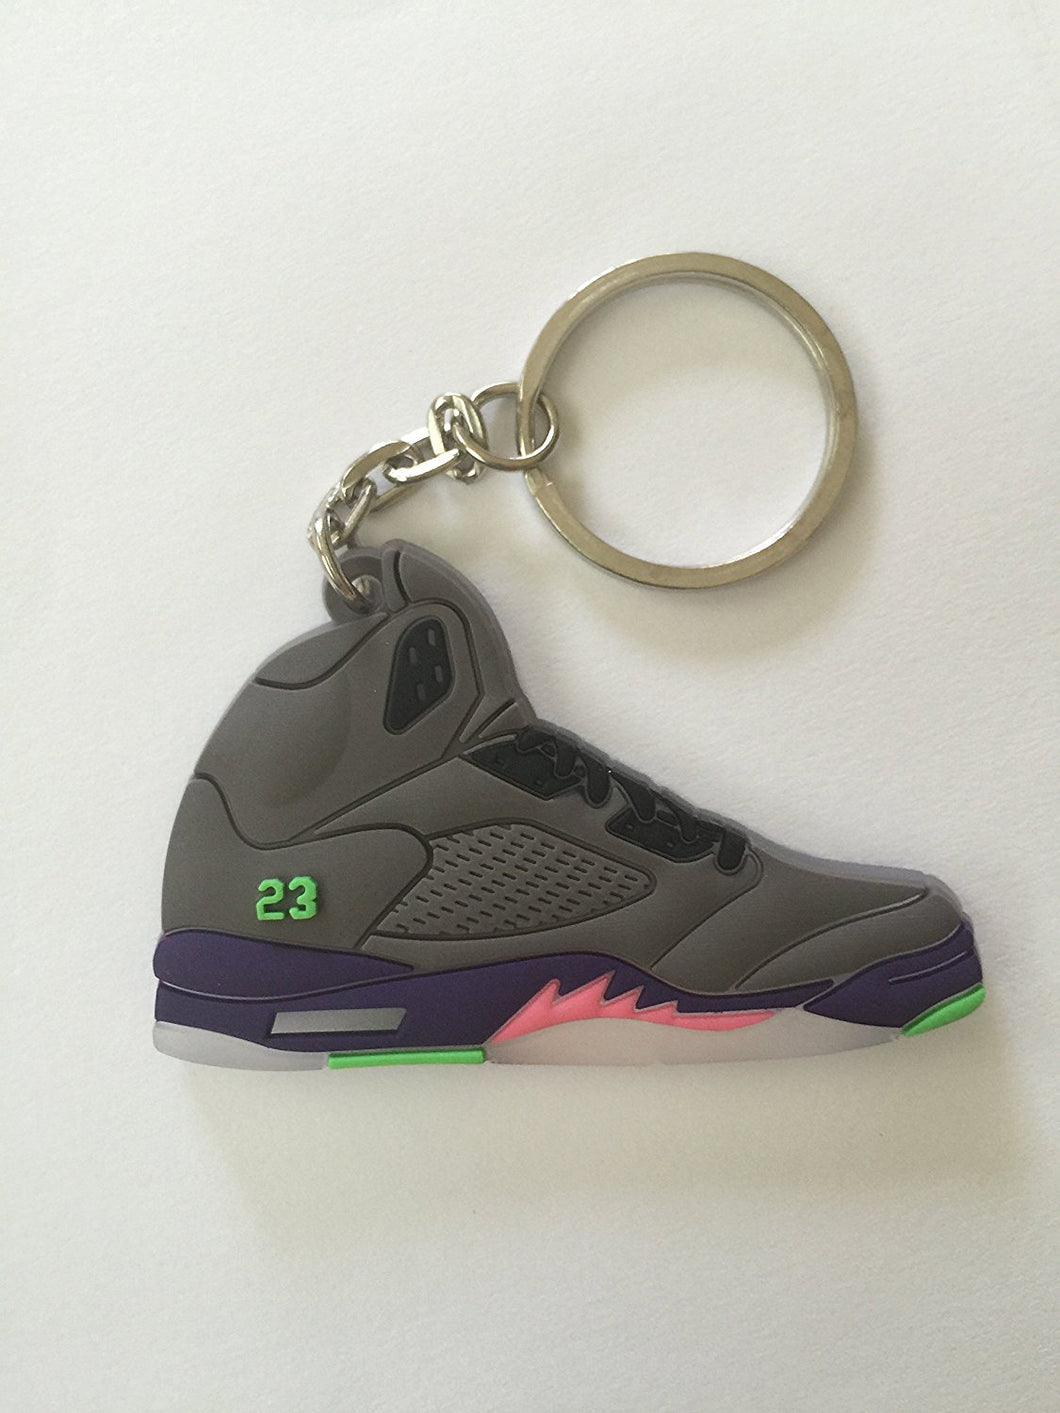 Air Jordan 5 Gray Sneakers Shoes Keychain Keyring